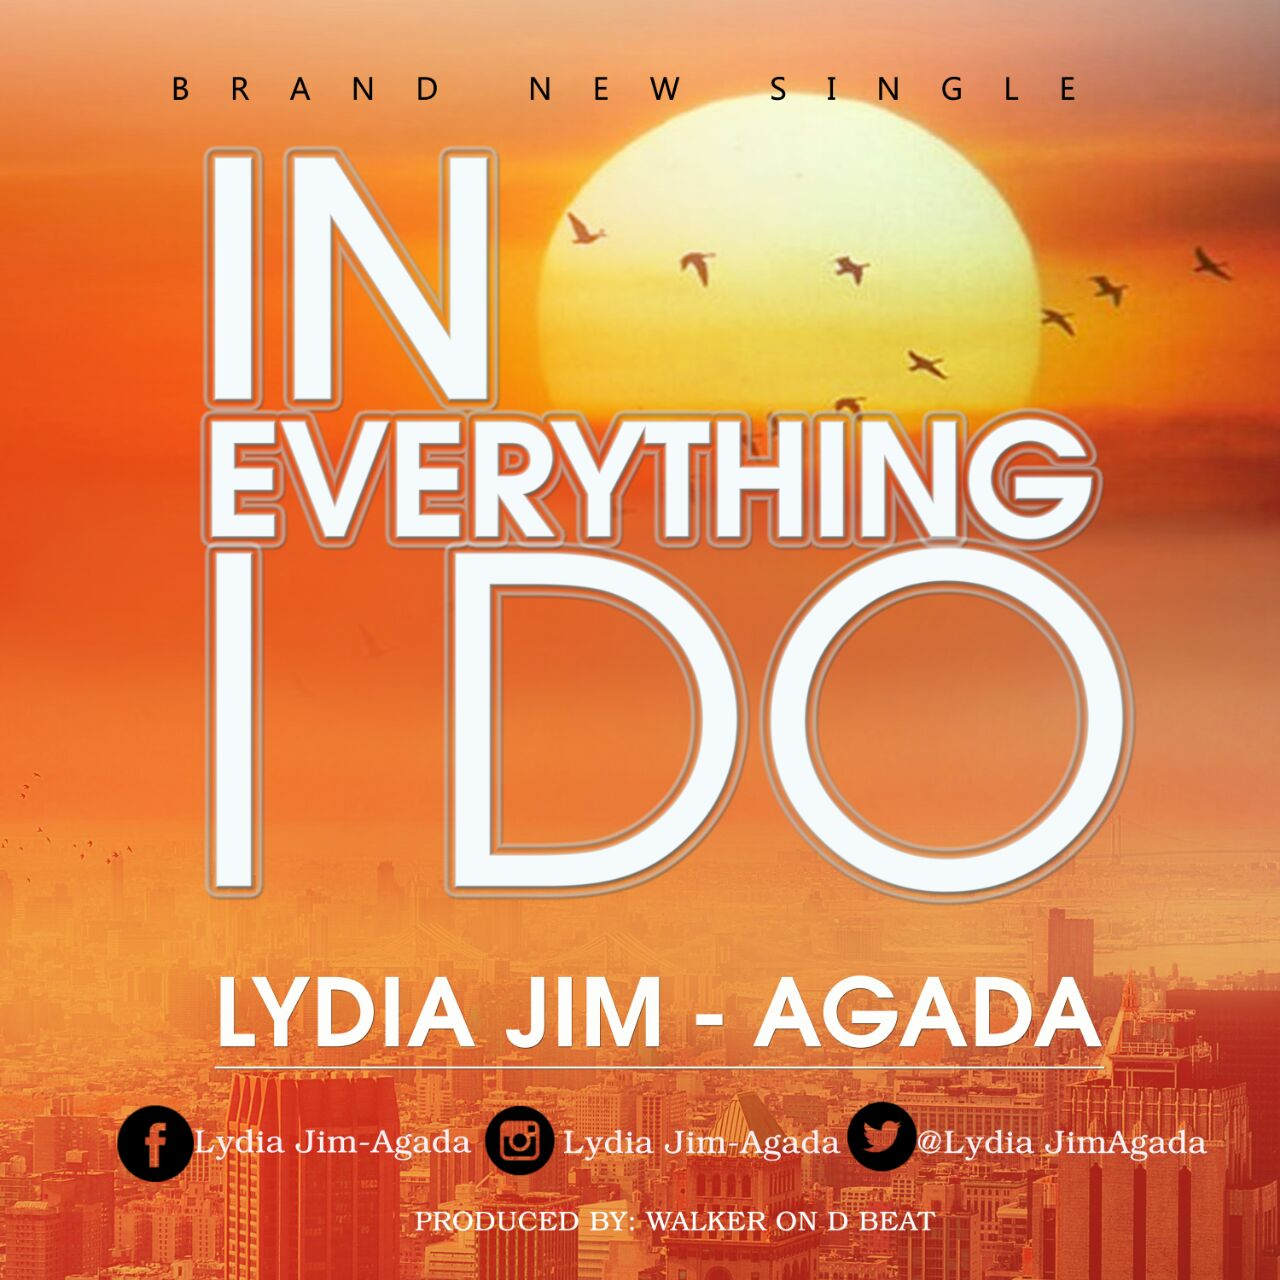 IN EVERYTHING I DO - Lydia Jim-Agada [@LydiaJimAgada]